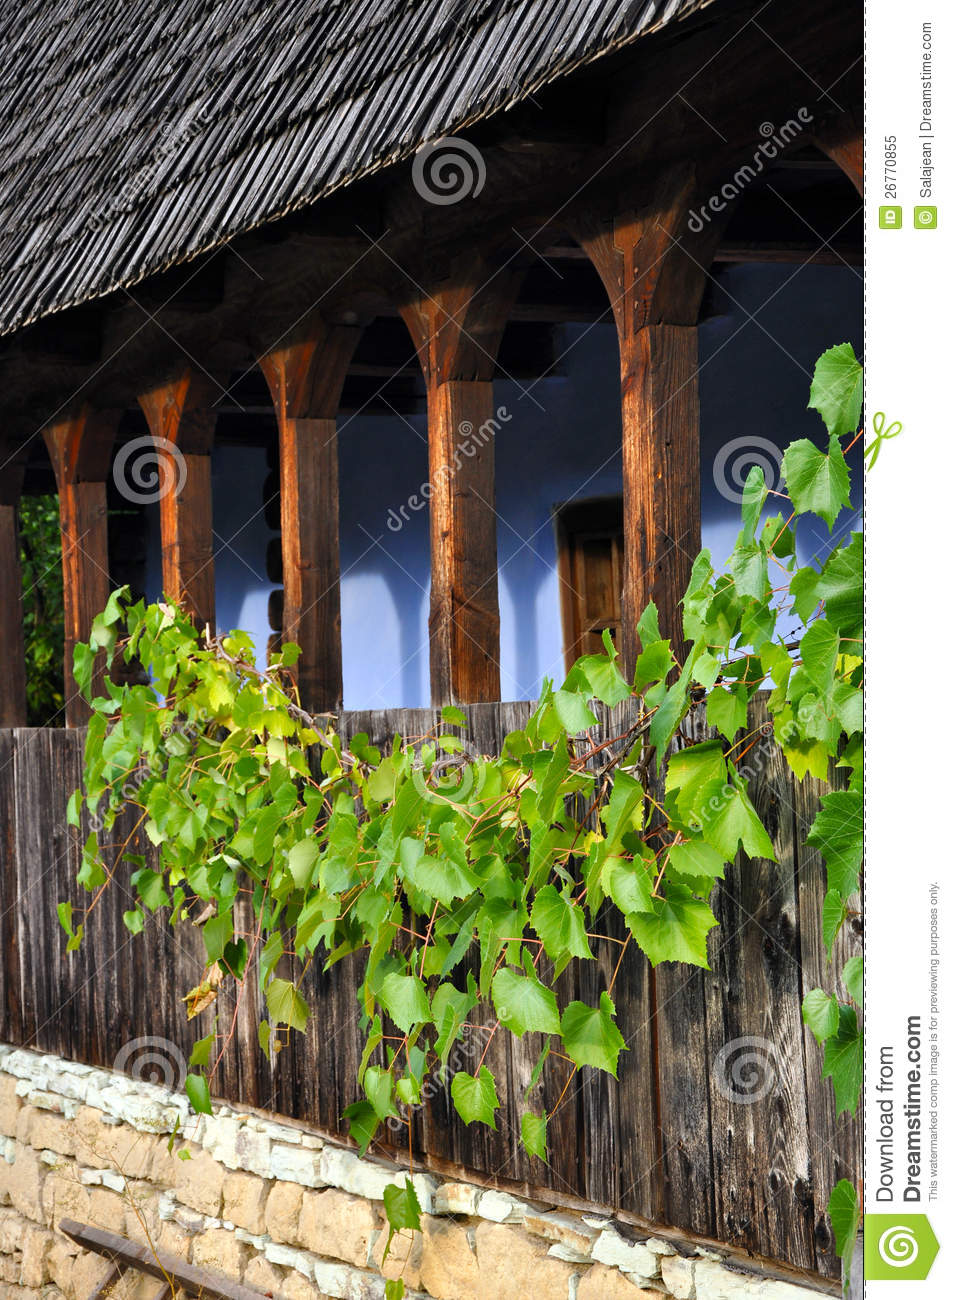 wooden veranda with grape leaves royalty free stock photo image 26770855. Black Bedroom Furniture Sets. Home Design Ideas